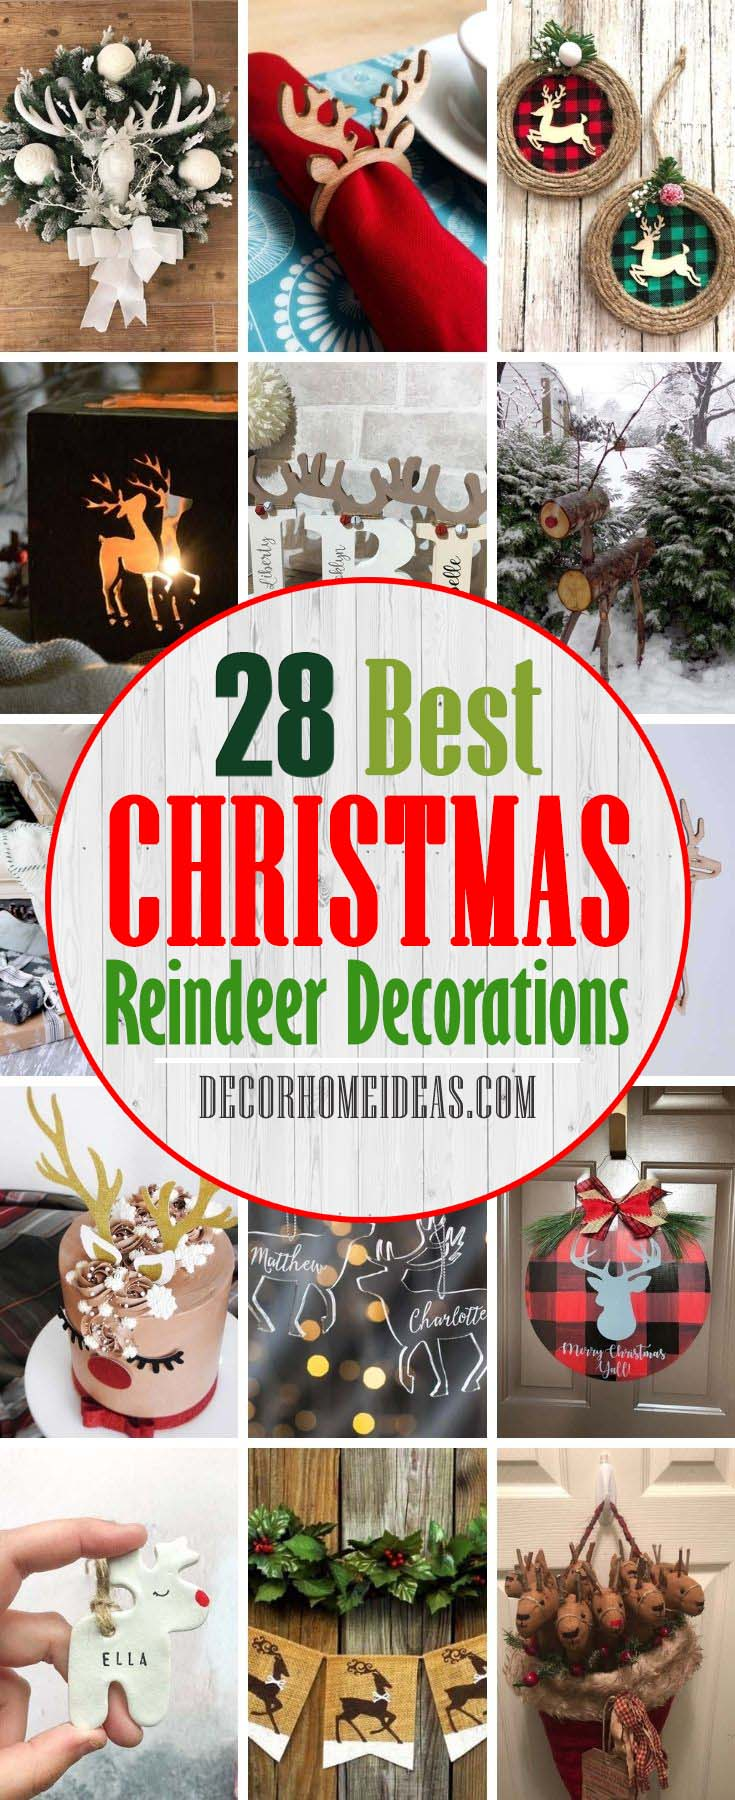 Best Christmas Reindeer Decoration. Christmas is the perfect time of year to decorate your home with DIY Christmas reindeer decor! Sure Santa is common, snowmen are wonderful, and Christmas trees will always have their place, but Christmas reindeer are so cute, festive and fun! #decorhomeideas